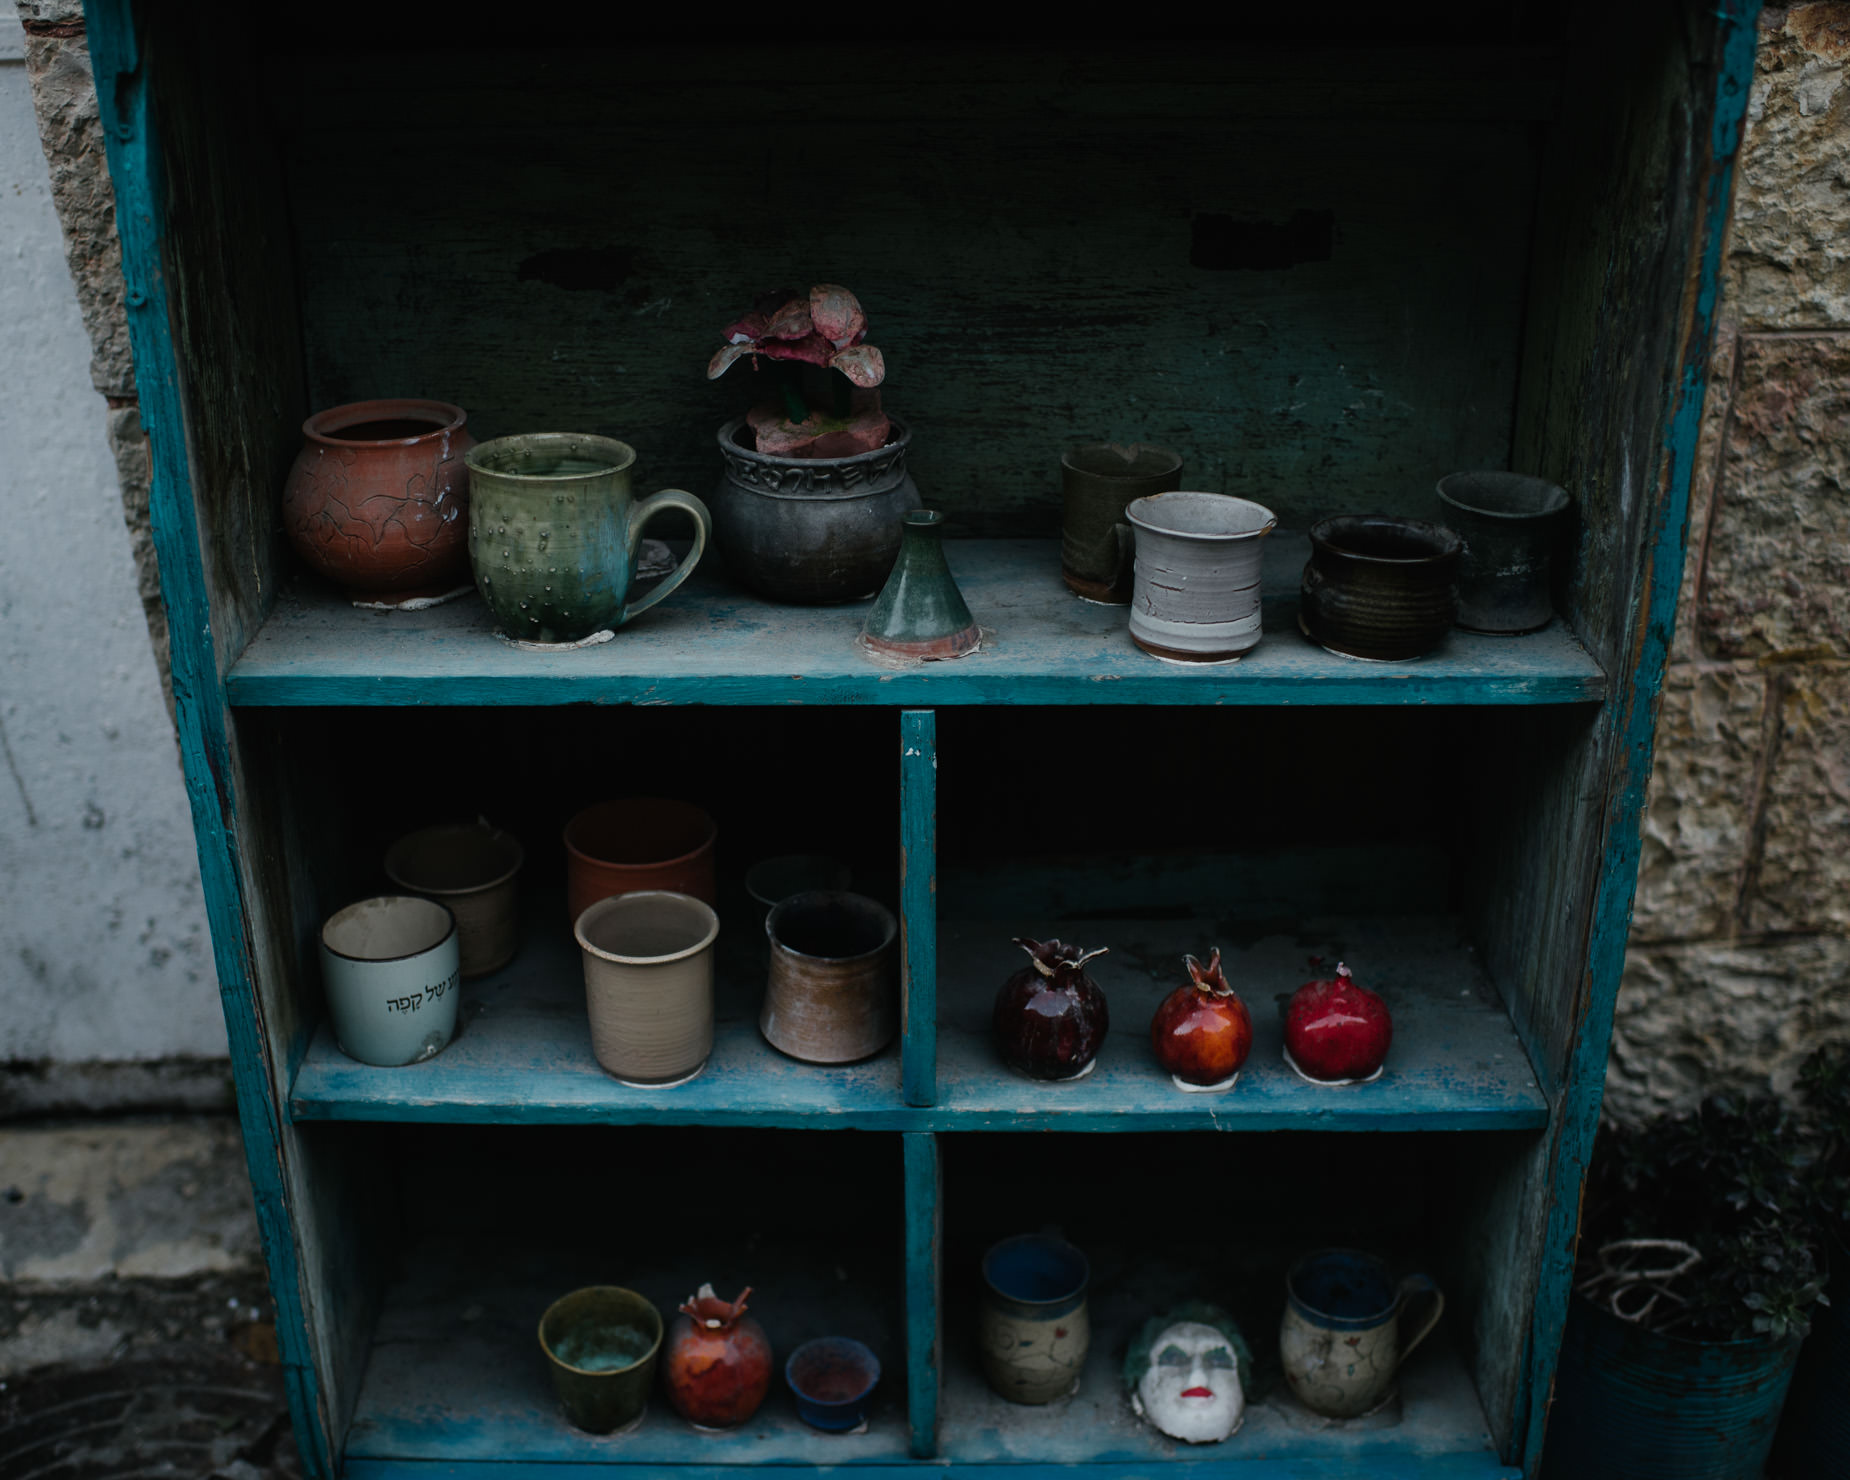 china pieces in Jerusalem alley